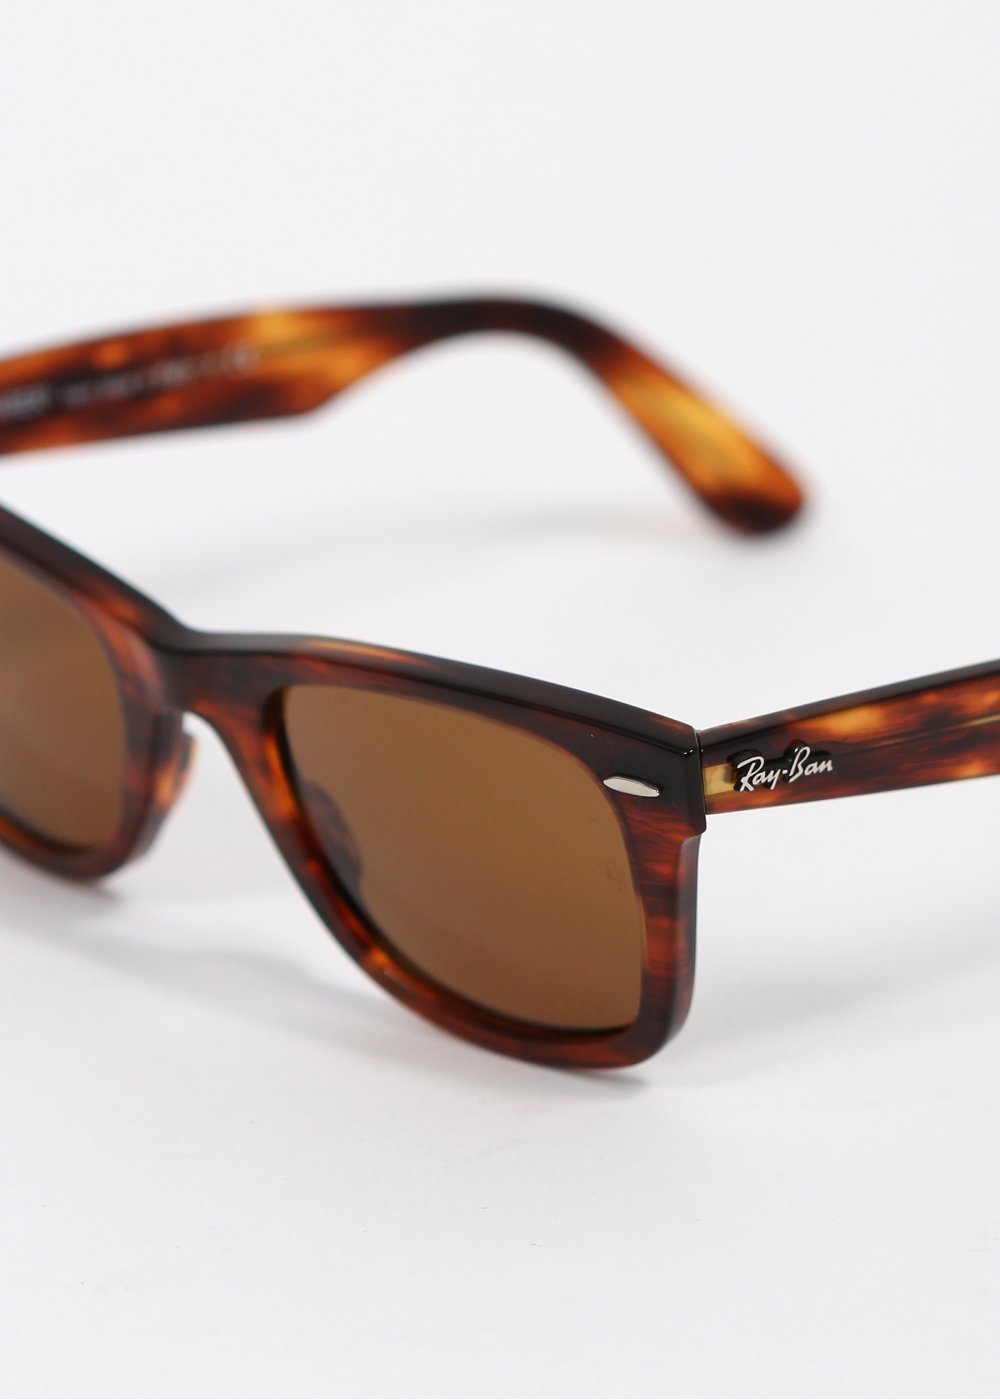 Ray ban sunglasses sale new zealand - Cheapest Ray Ban Rb 3183 Gold Hill